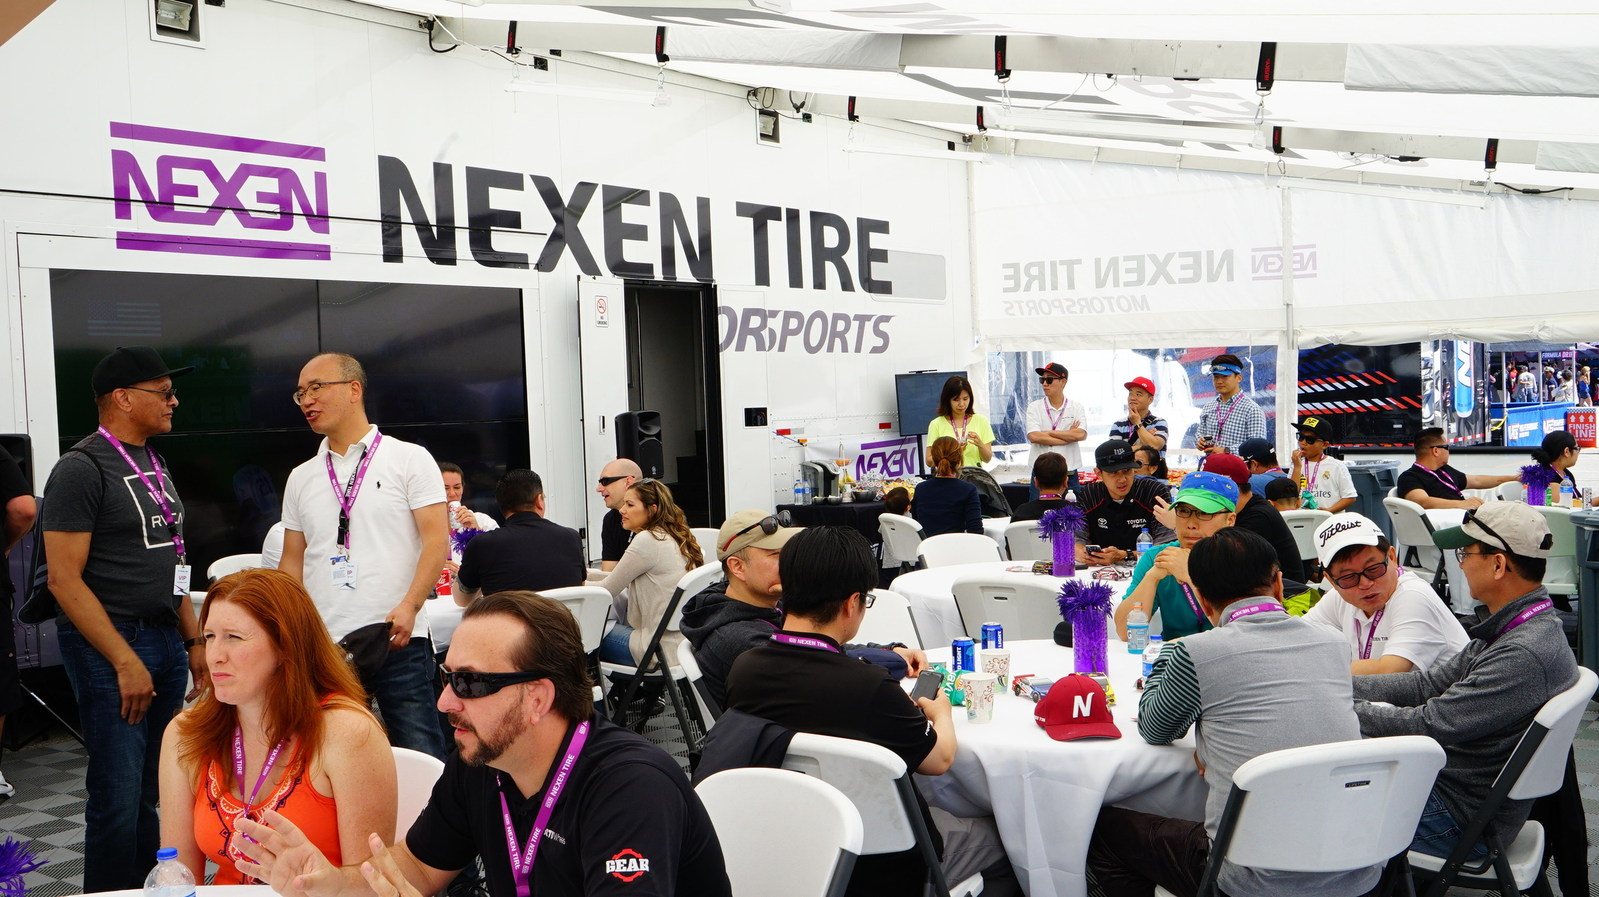 The 2017 Formula DRIFT Launches its Season with Nexen Tire as its Official Major Partner for the Second Consecutive Year (PRNewsfoto/Nexen Tire)